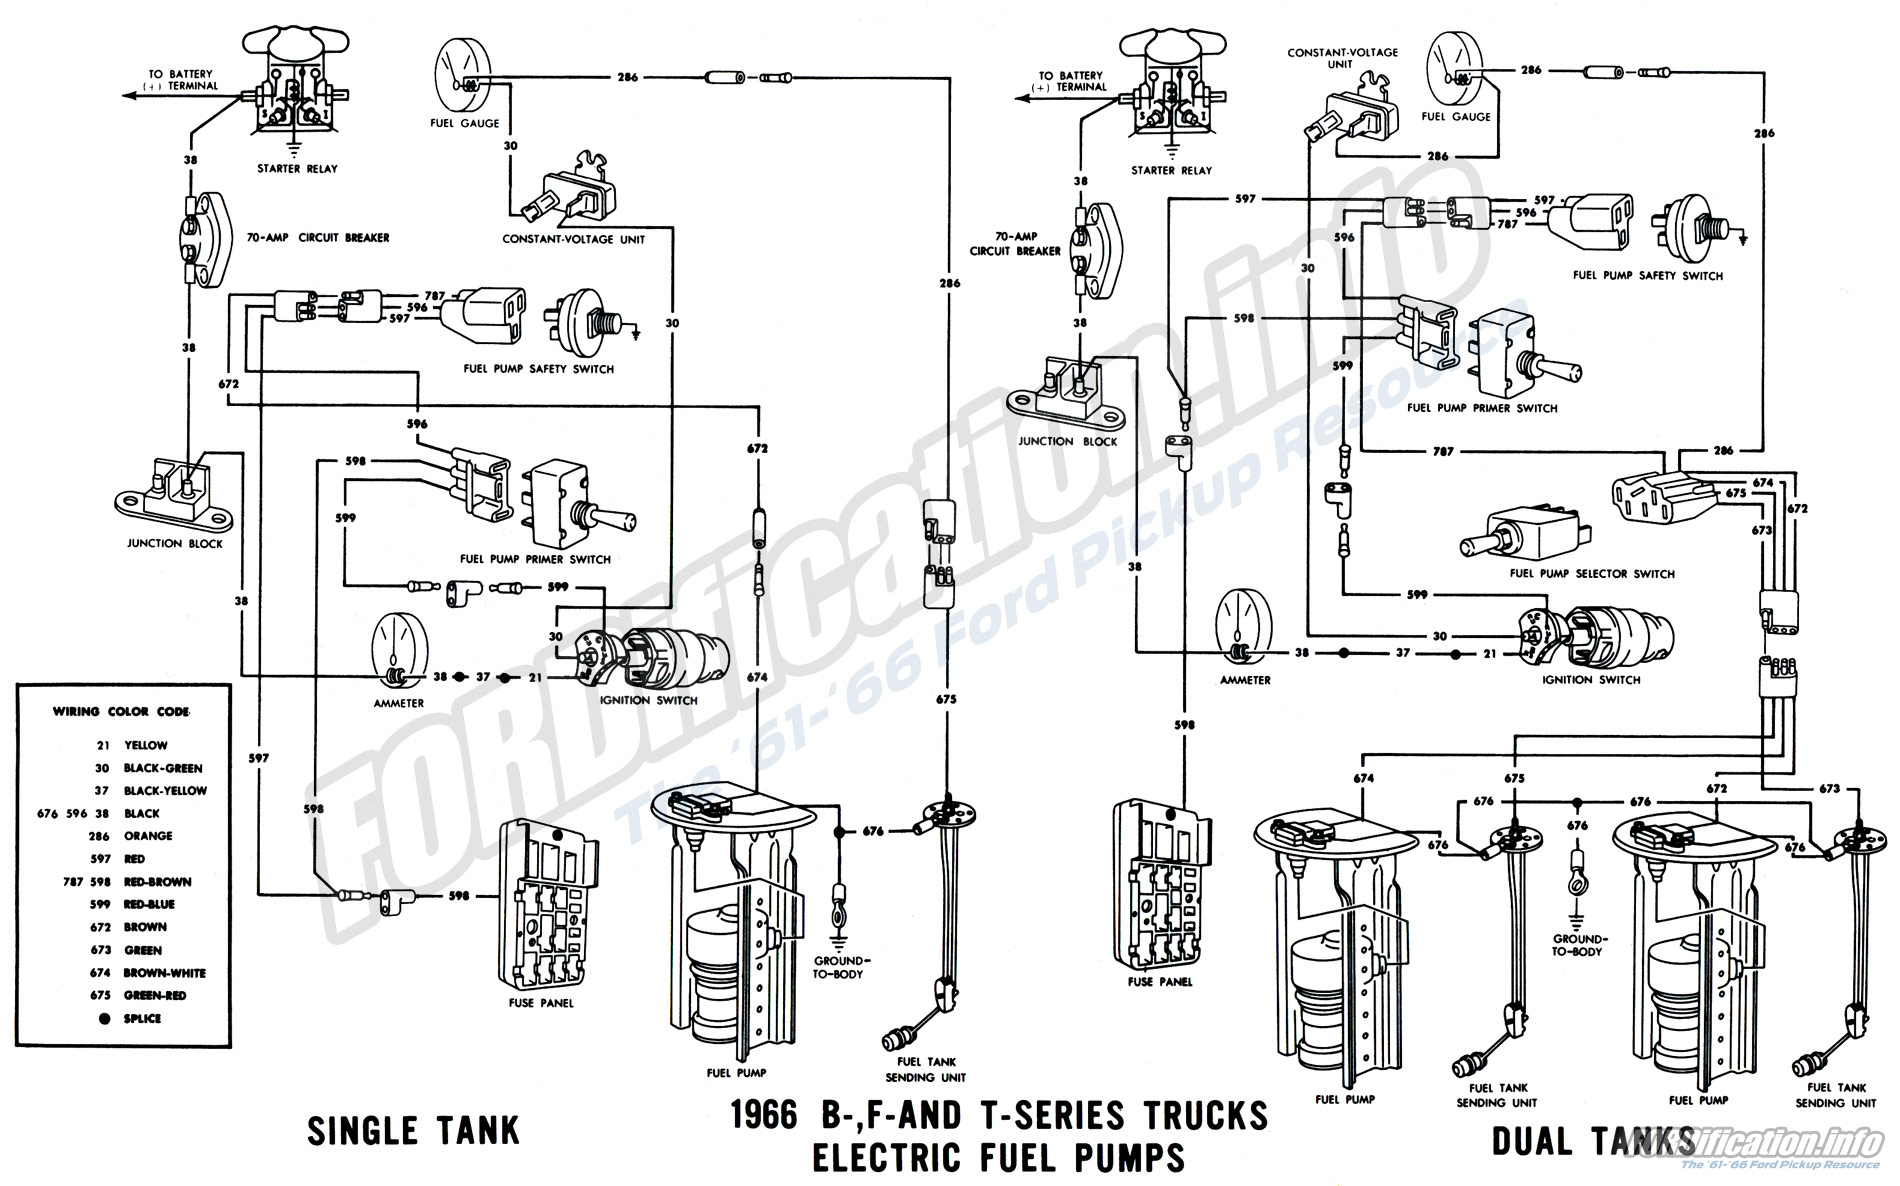 73 ford f250 wiring | wiring diagram database 73 ford f 250 wiring diagram #10